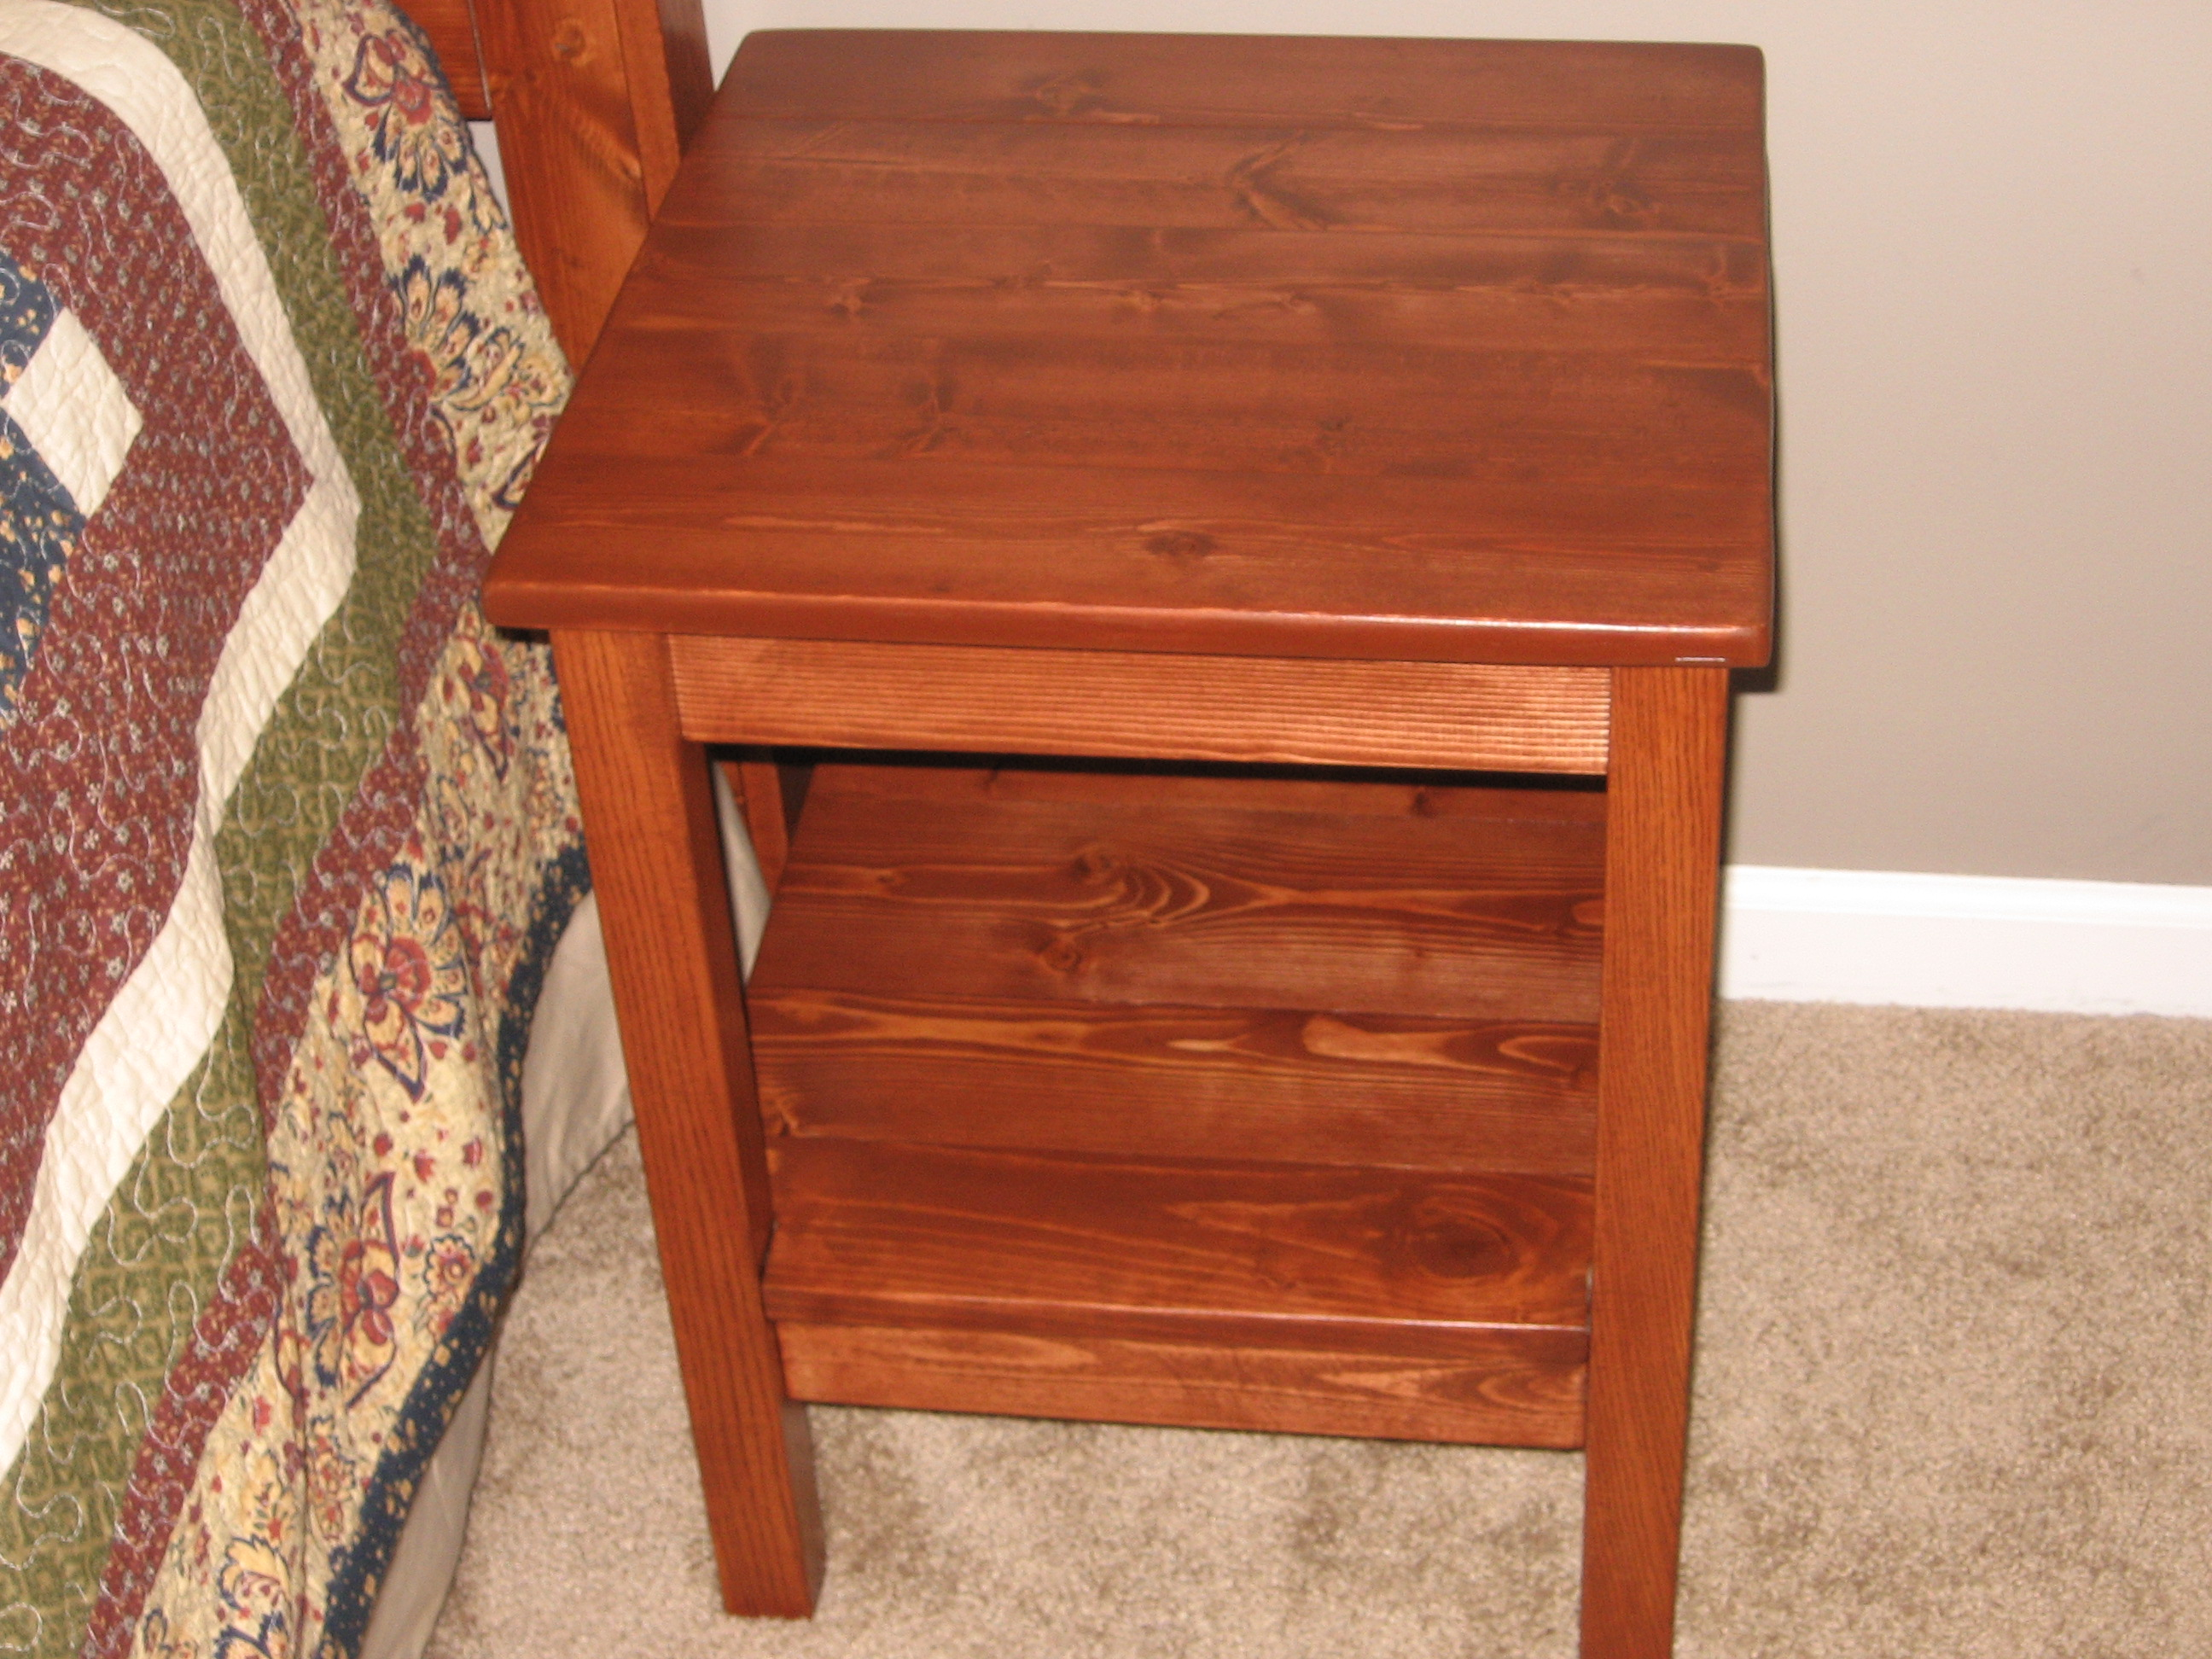 Plans to build Simple Bedside Table Plans PDF Plans